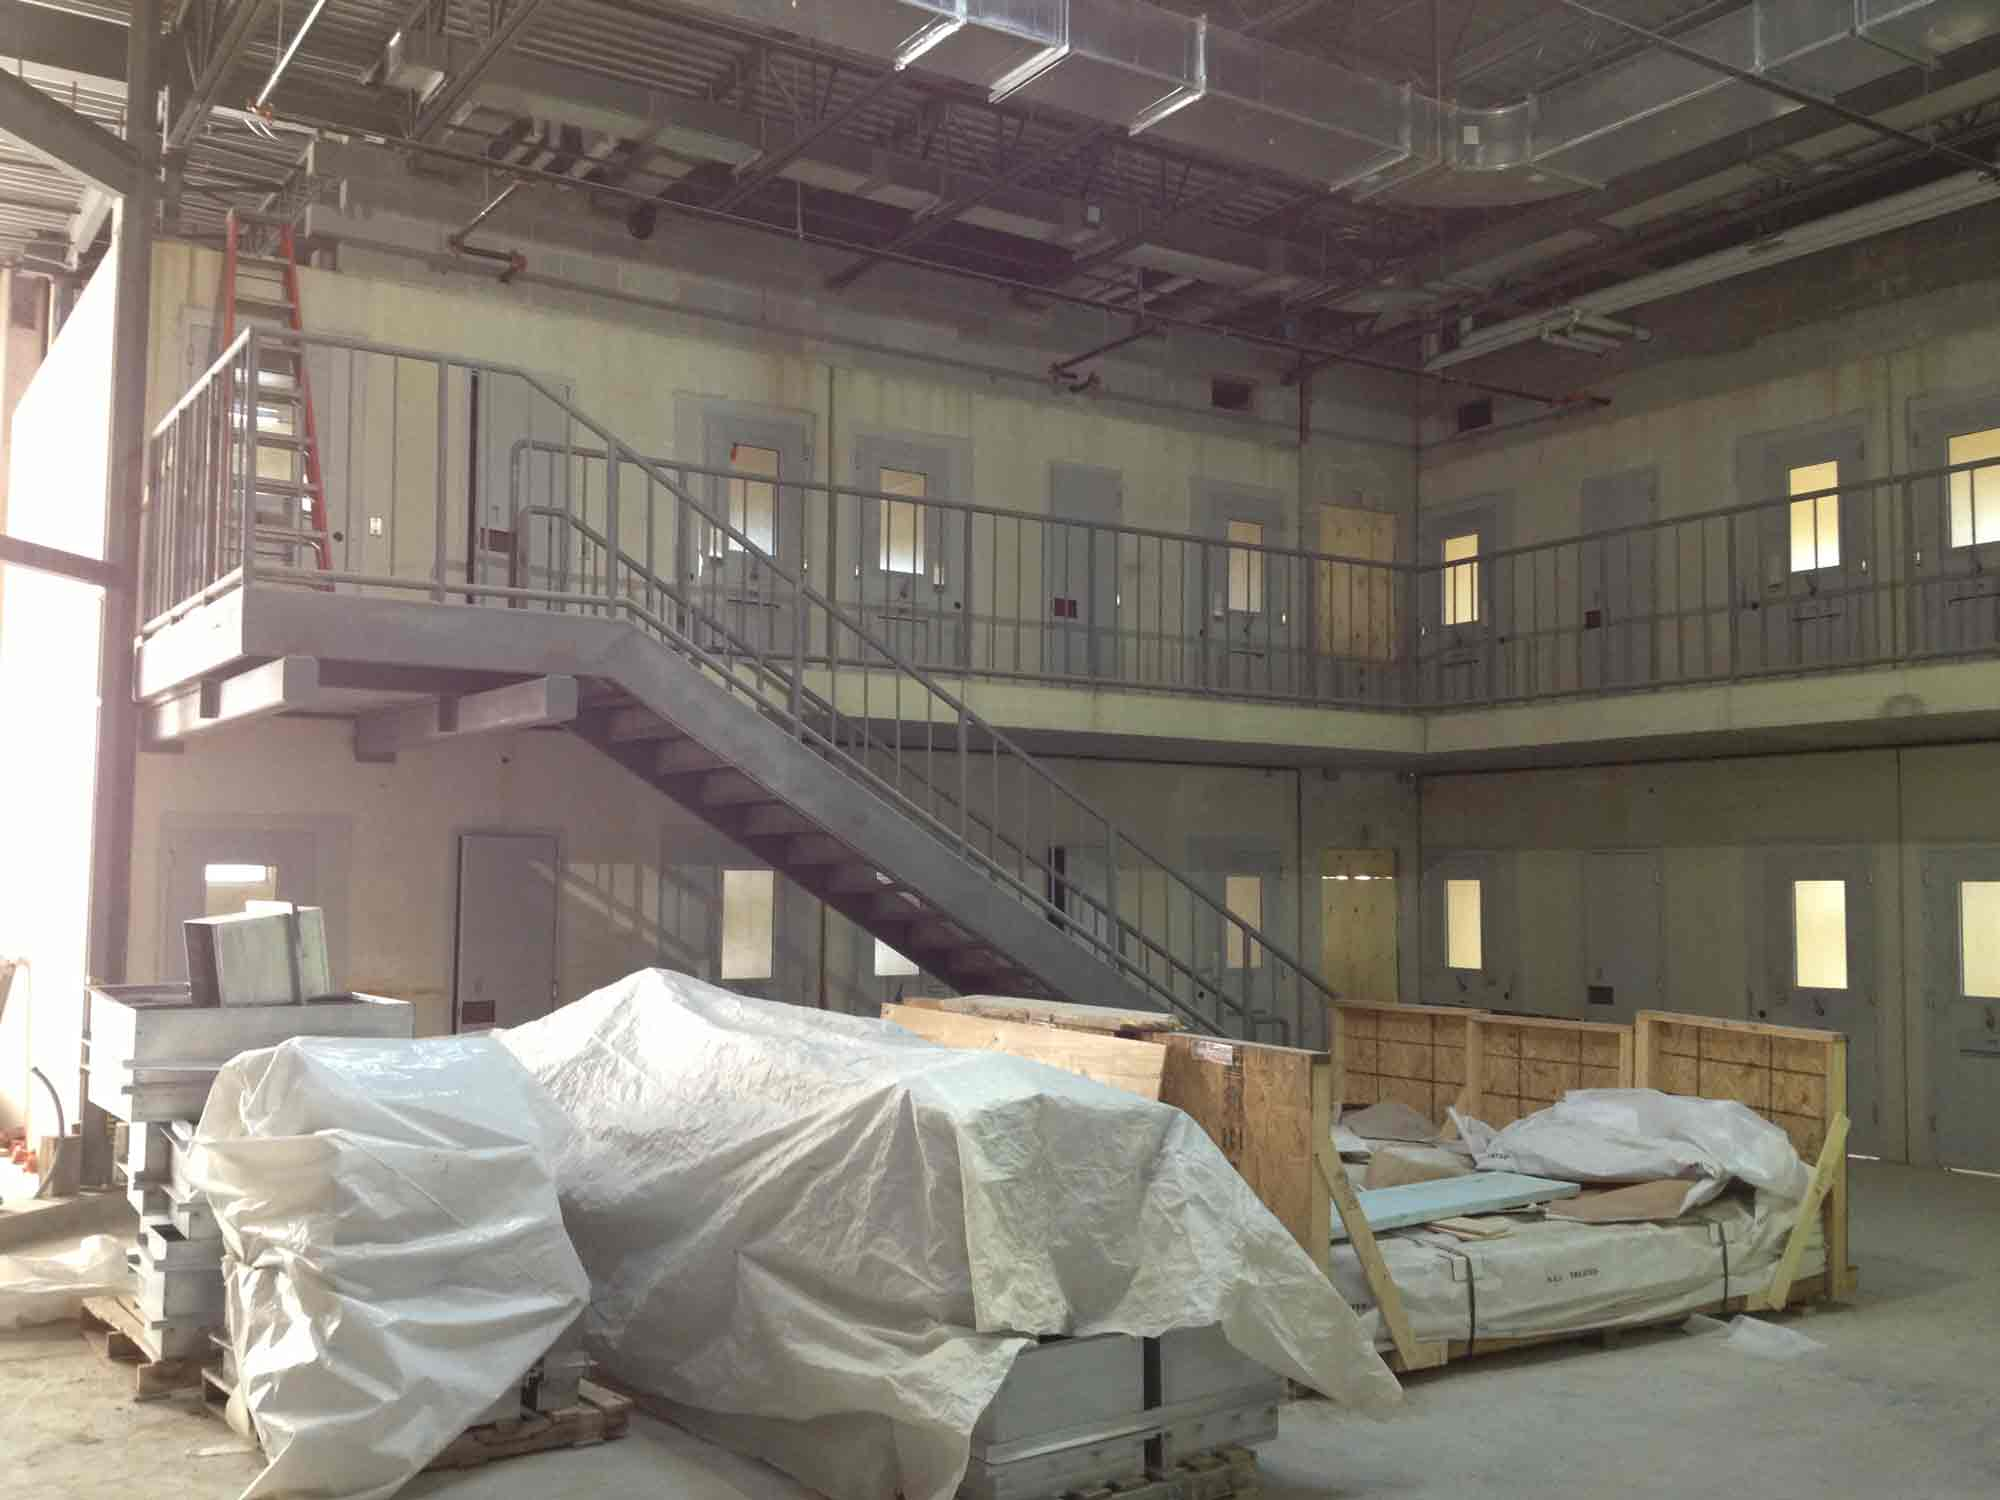 South West Detention Centre Windsor Ontario Corrections